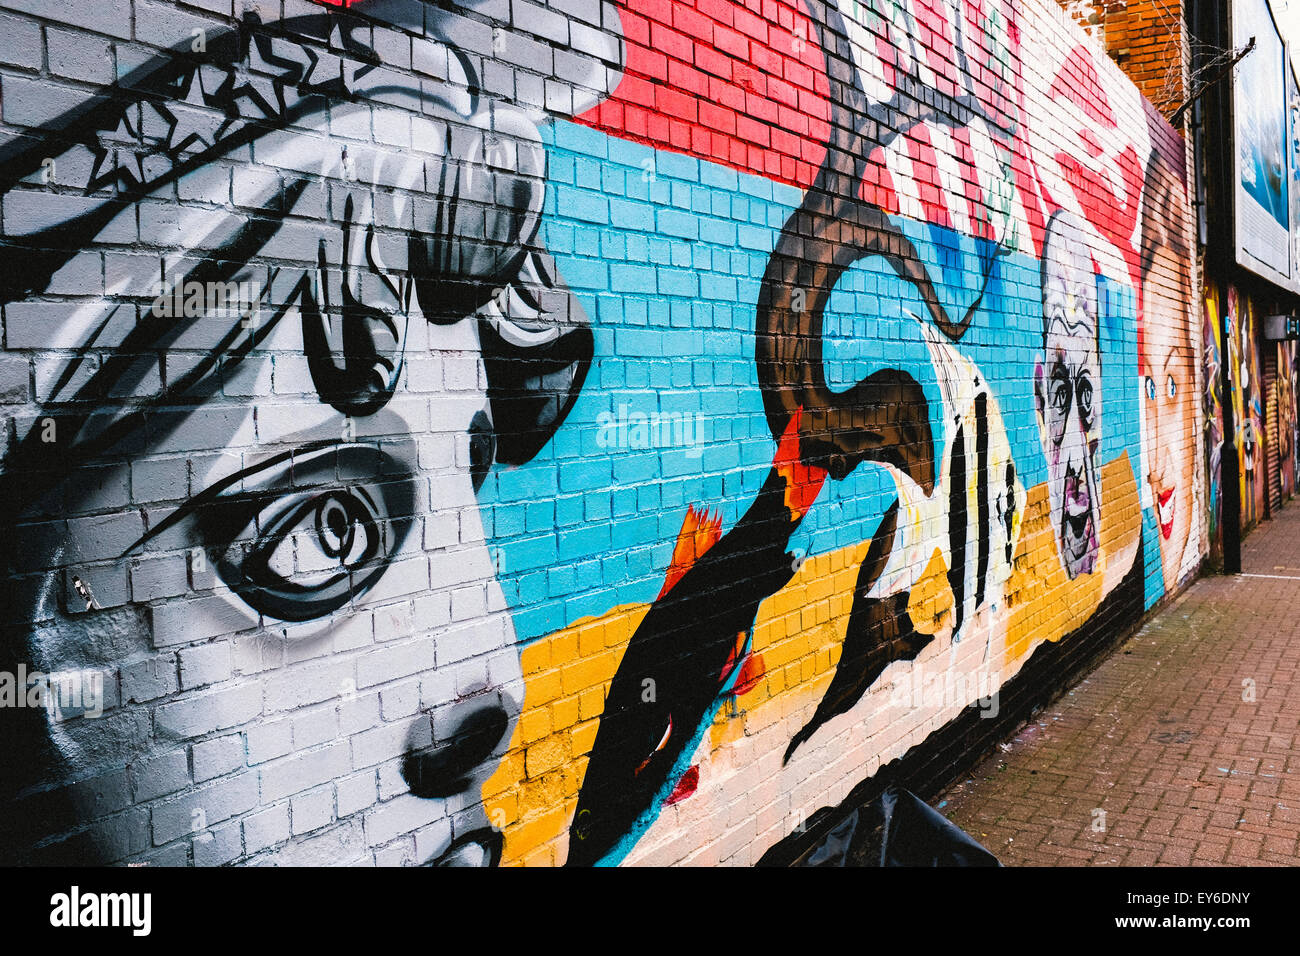 Graffiti wall uk - Graffiti Art On A Wall In Sunderland Uk Depicts The Right Eye And Part Of